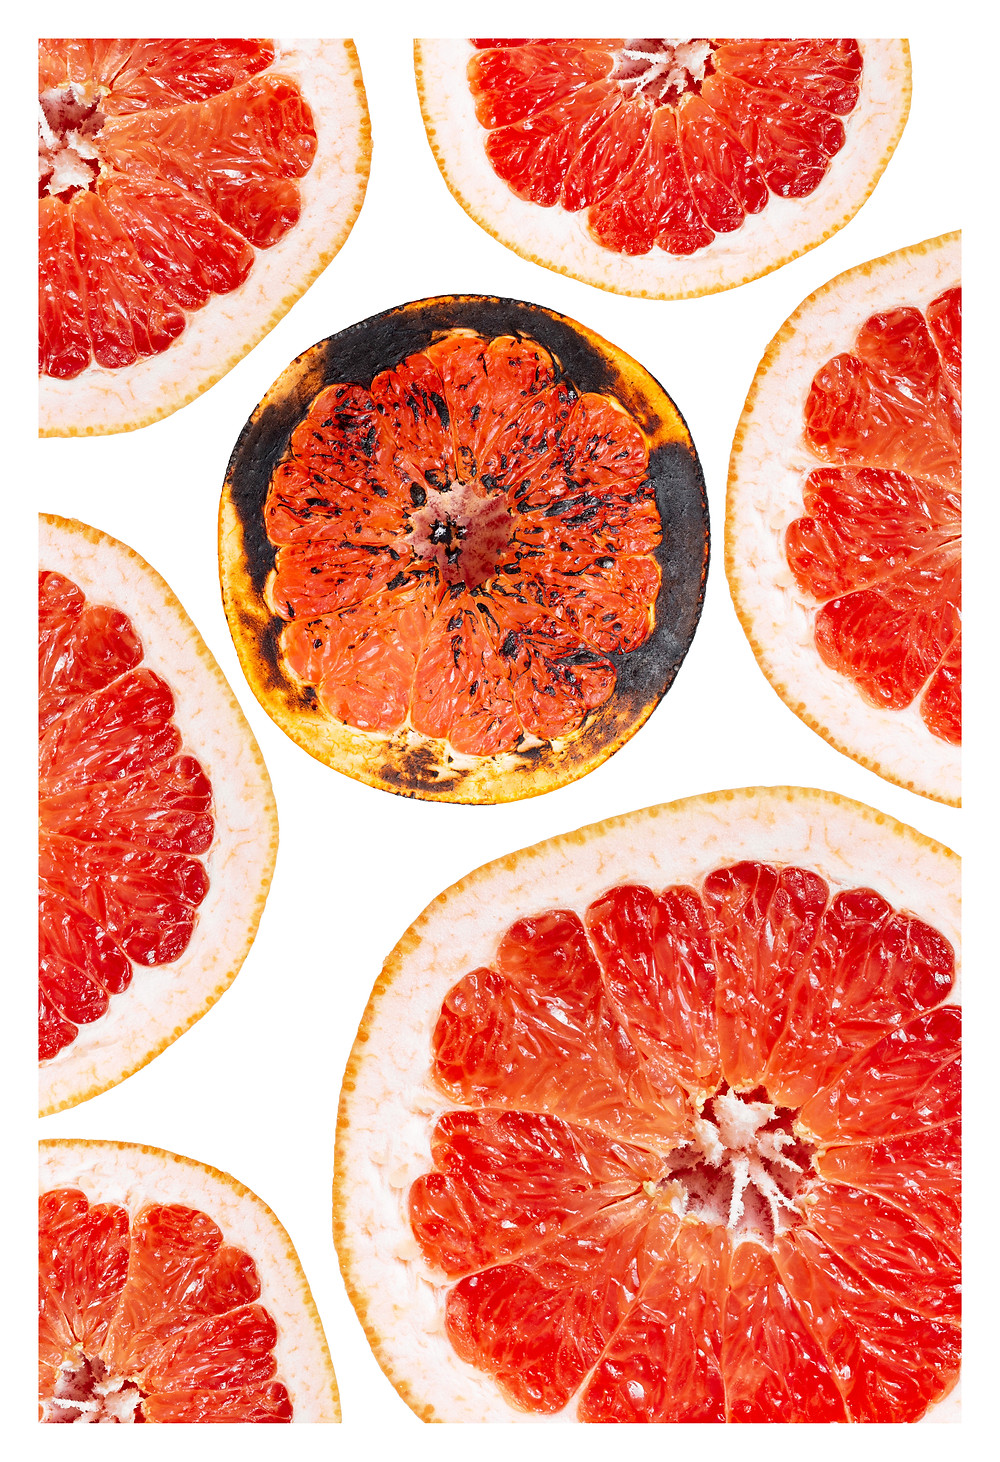 grapefruits     Prints will be ran in quantities 10 in 13x19 inches. All prints will be signed and numbered.  Made with fine art, archival exhibition-quality luster paper.  300 gsm double weight.